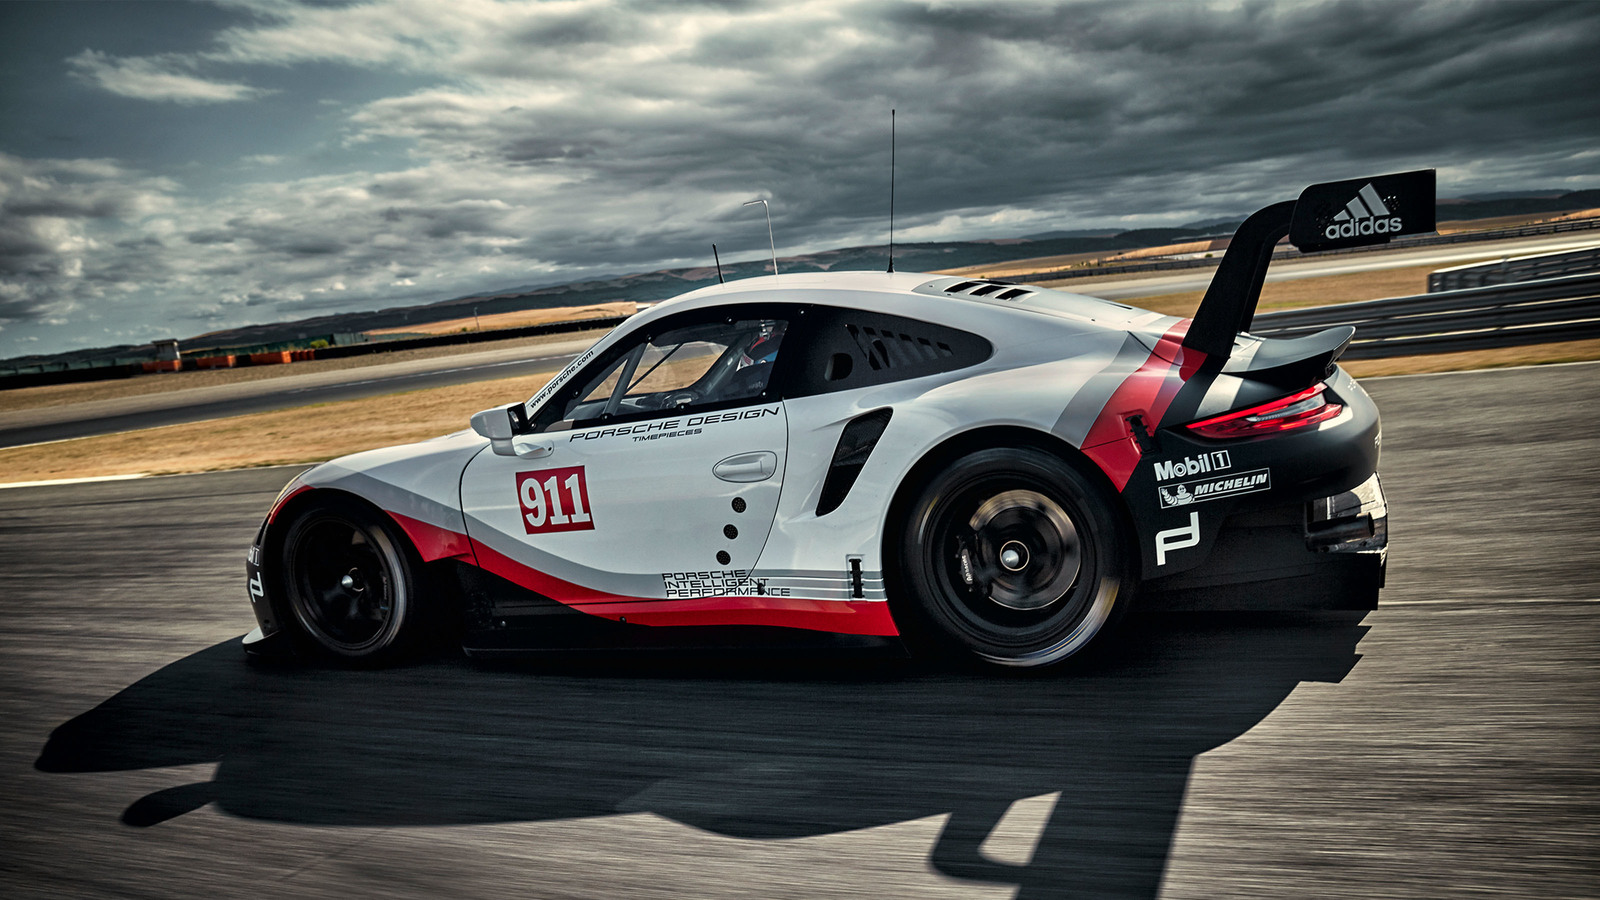 2017 Porsche 911 Rsr Racer Adopts Mid Engined Layout